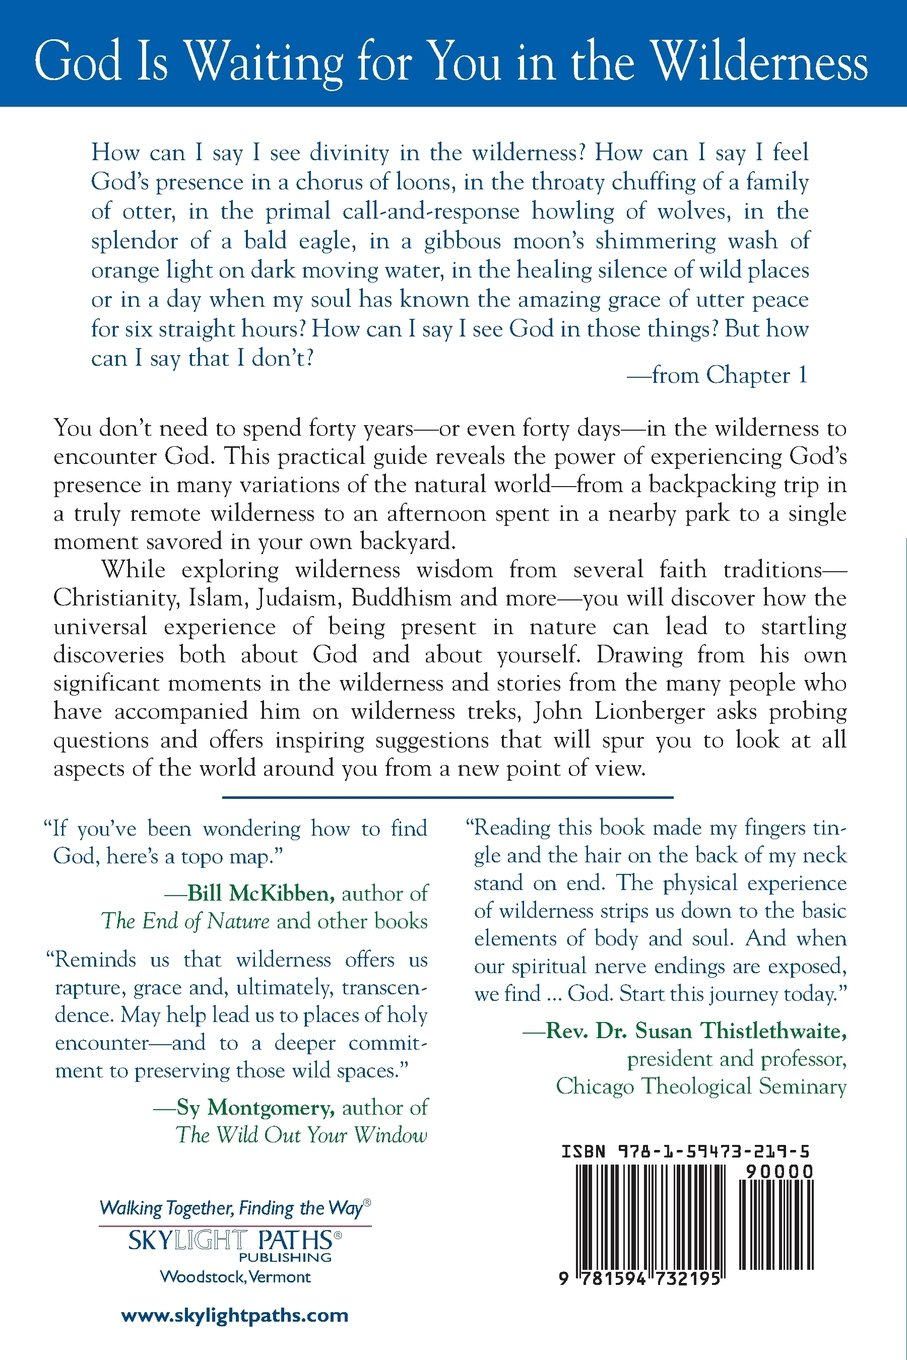 renewal in the wilderness a spiritual guide to connecting with